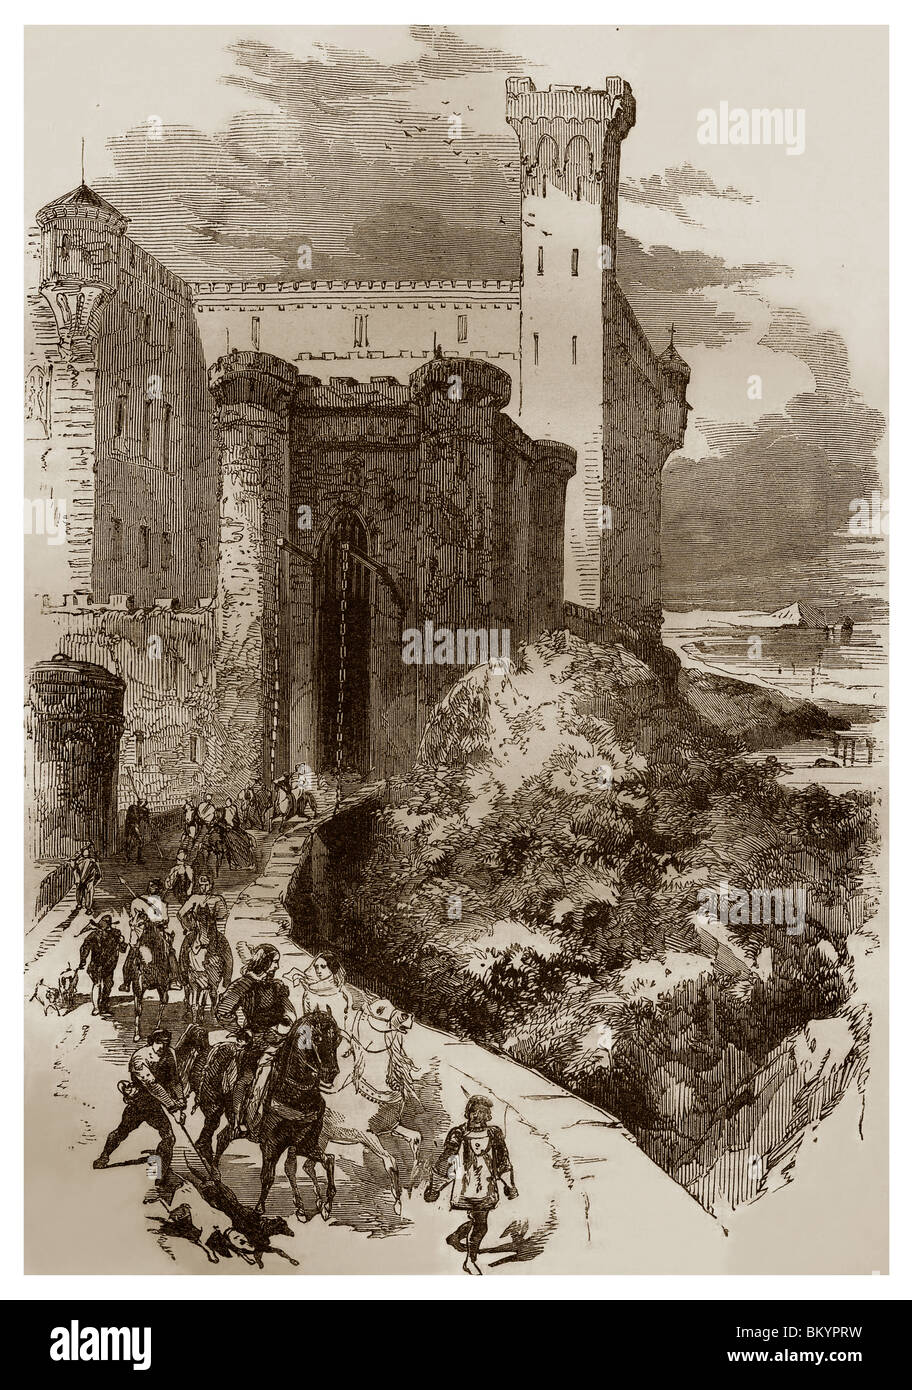 Feudal lord going out of his castle in France during the 11th century. - Stock Image